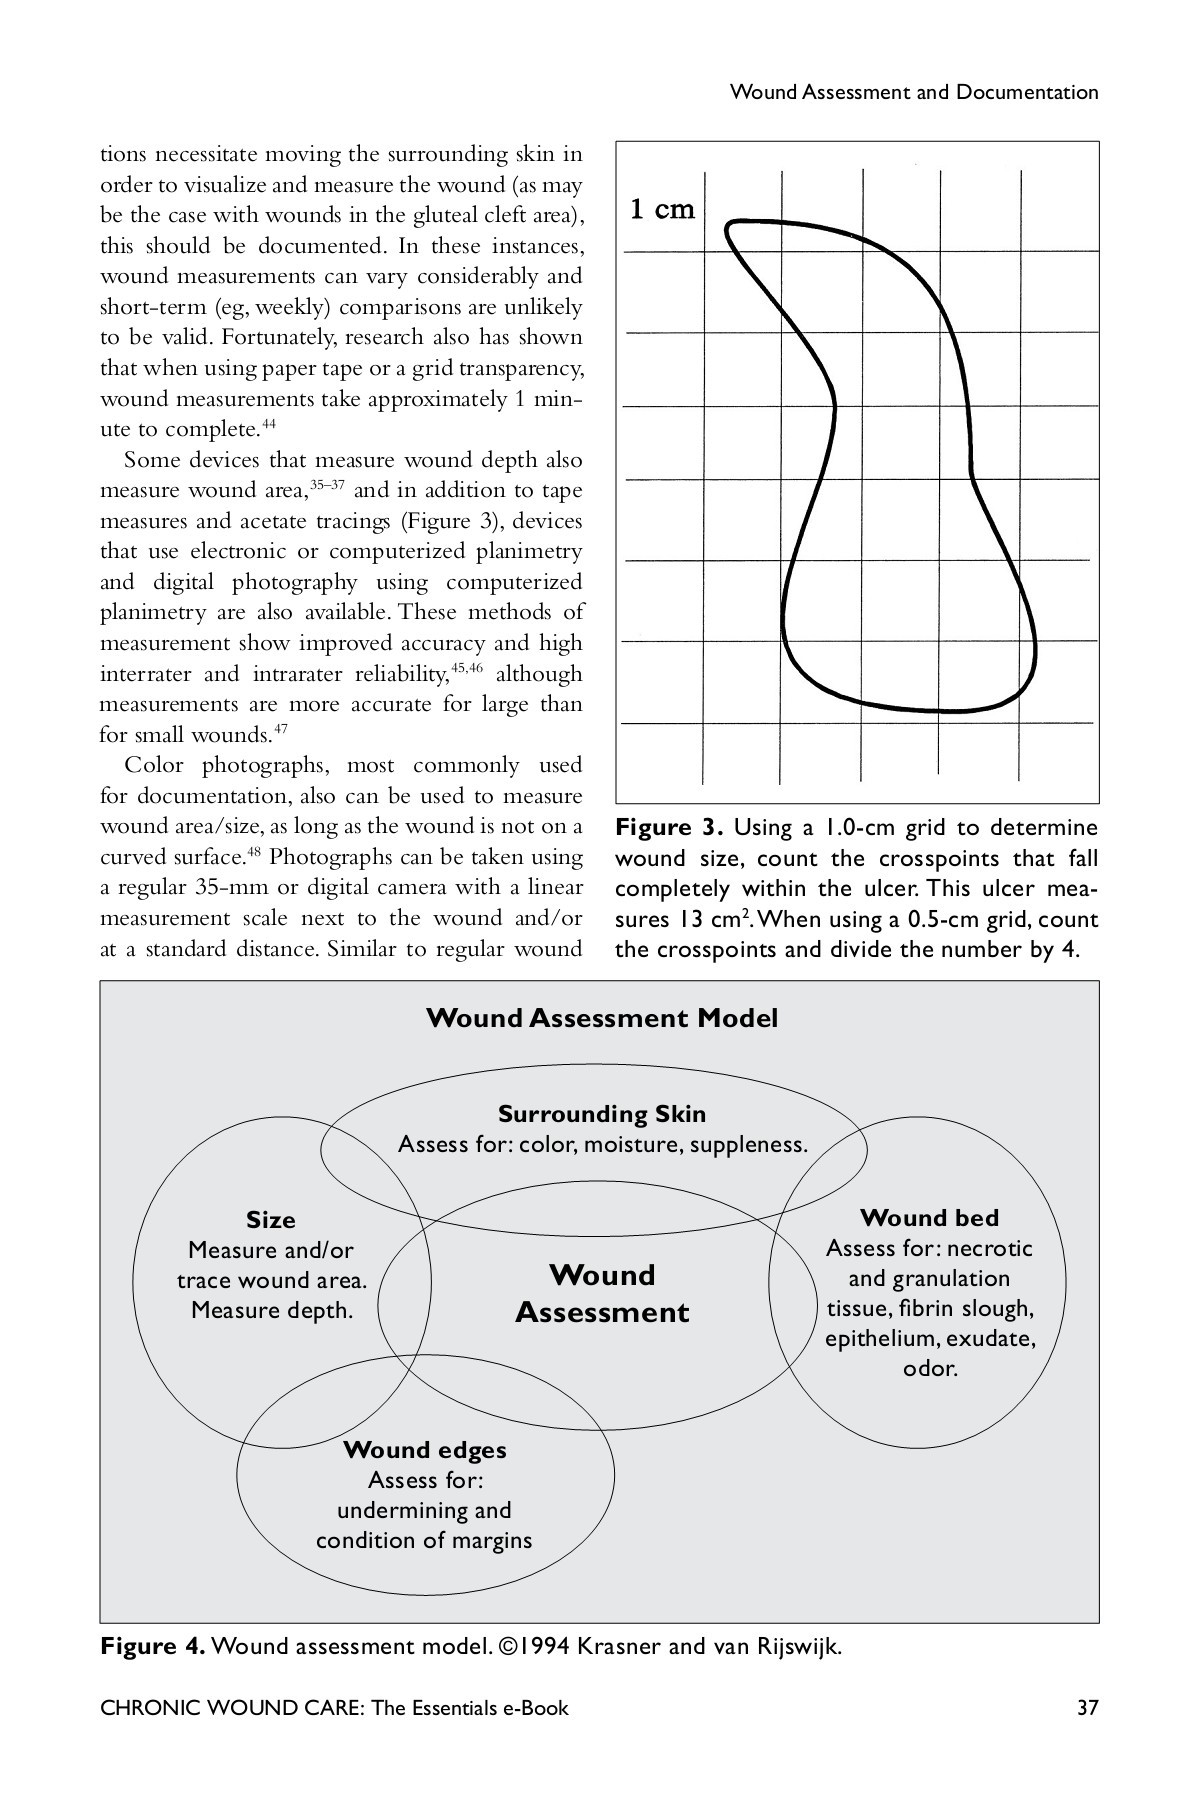 hight resolution of chronic wound care the essentials e book pages 51 100 text version fliphtml5